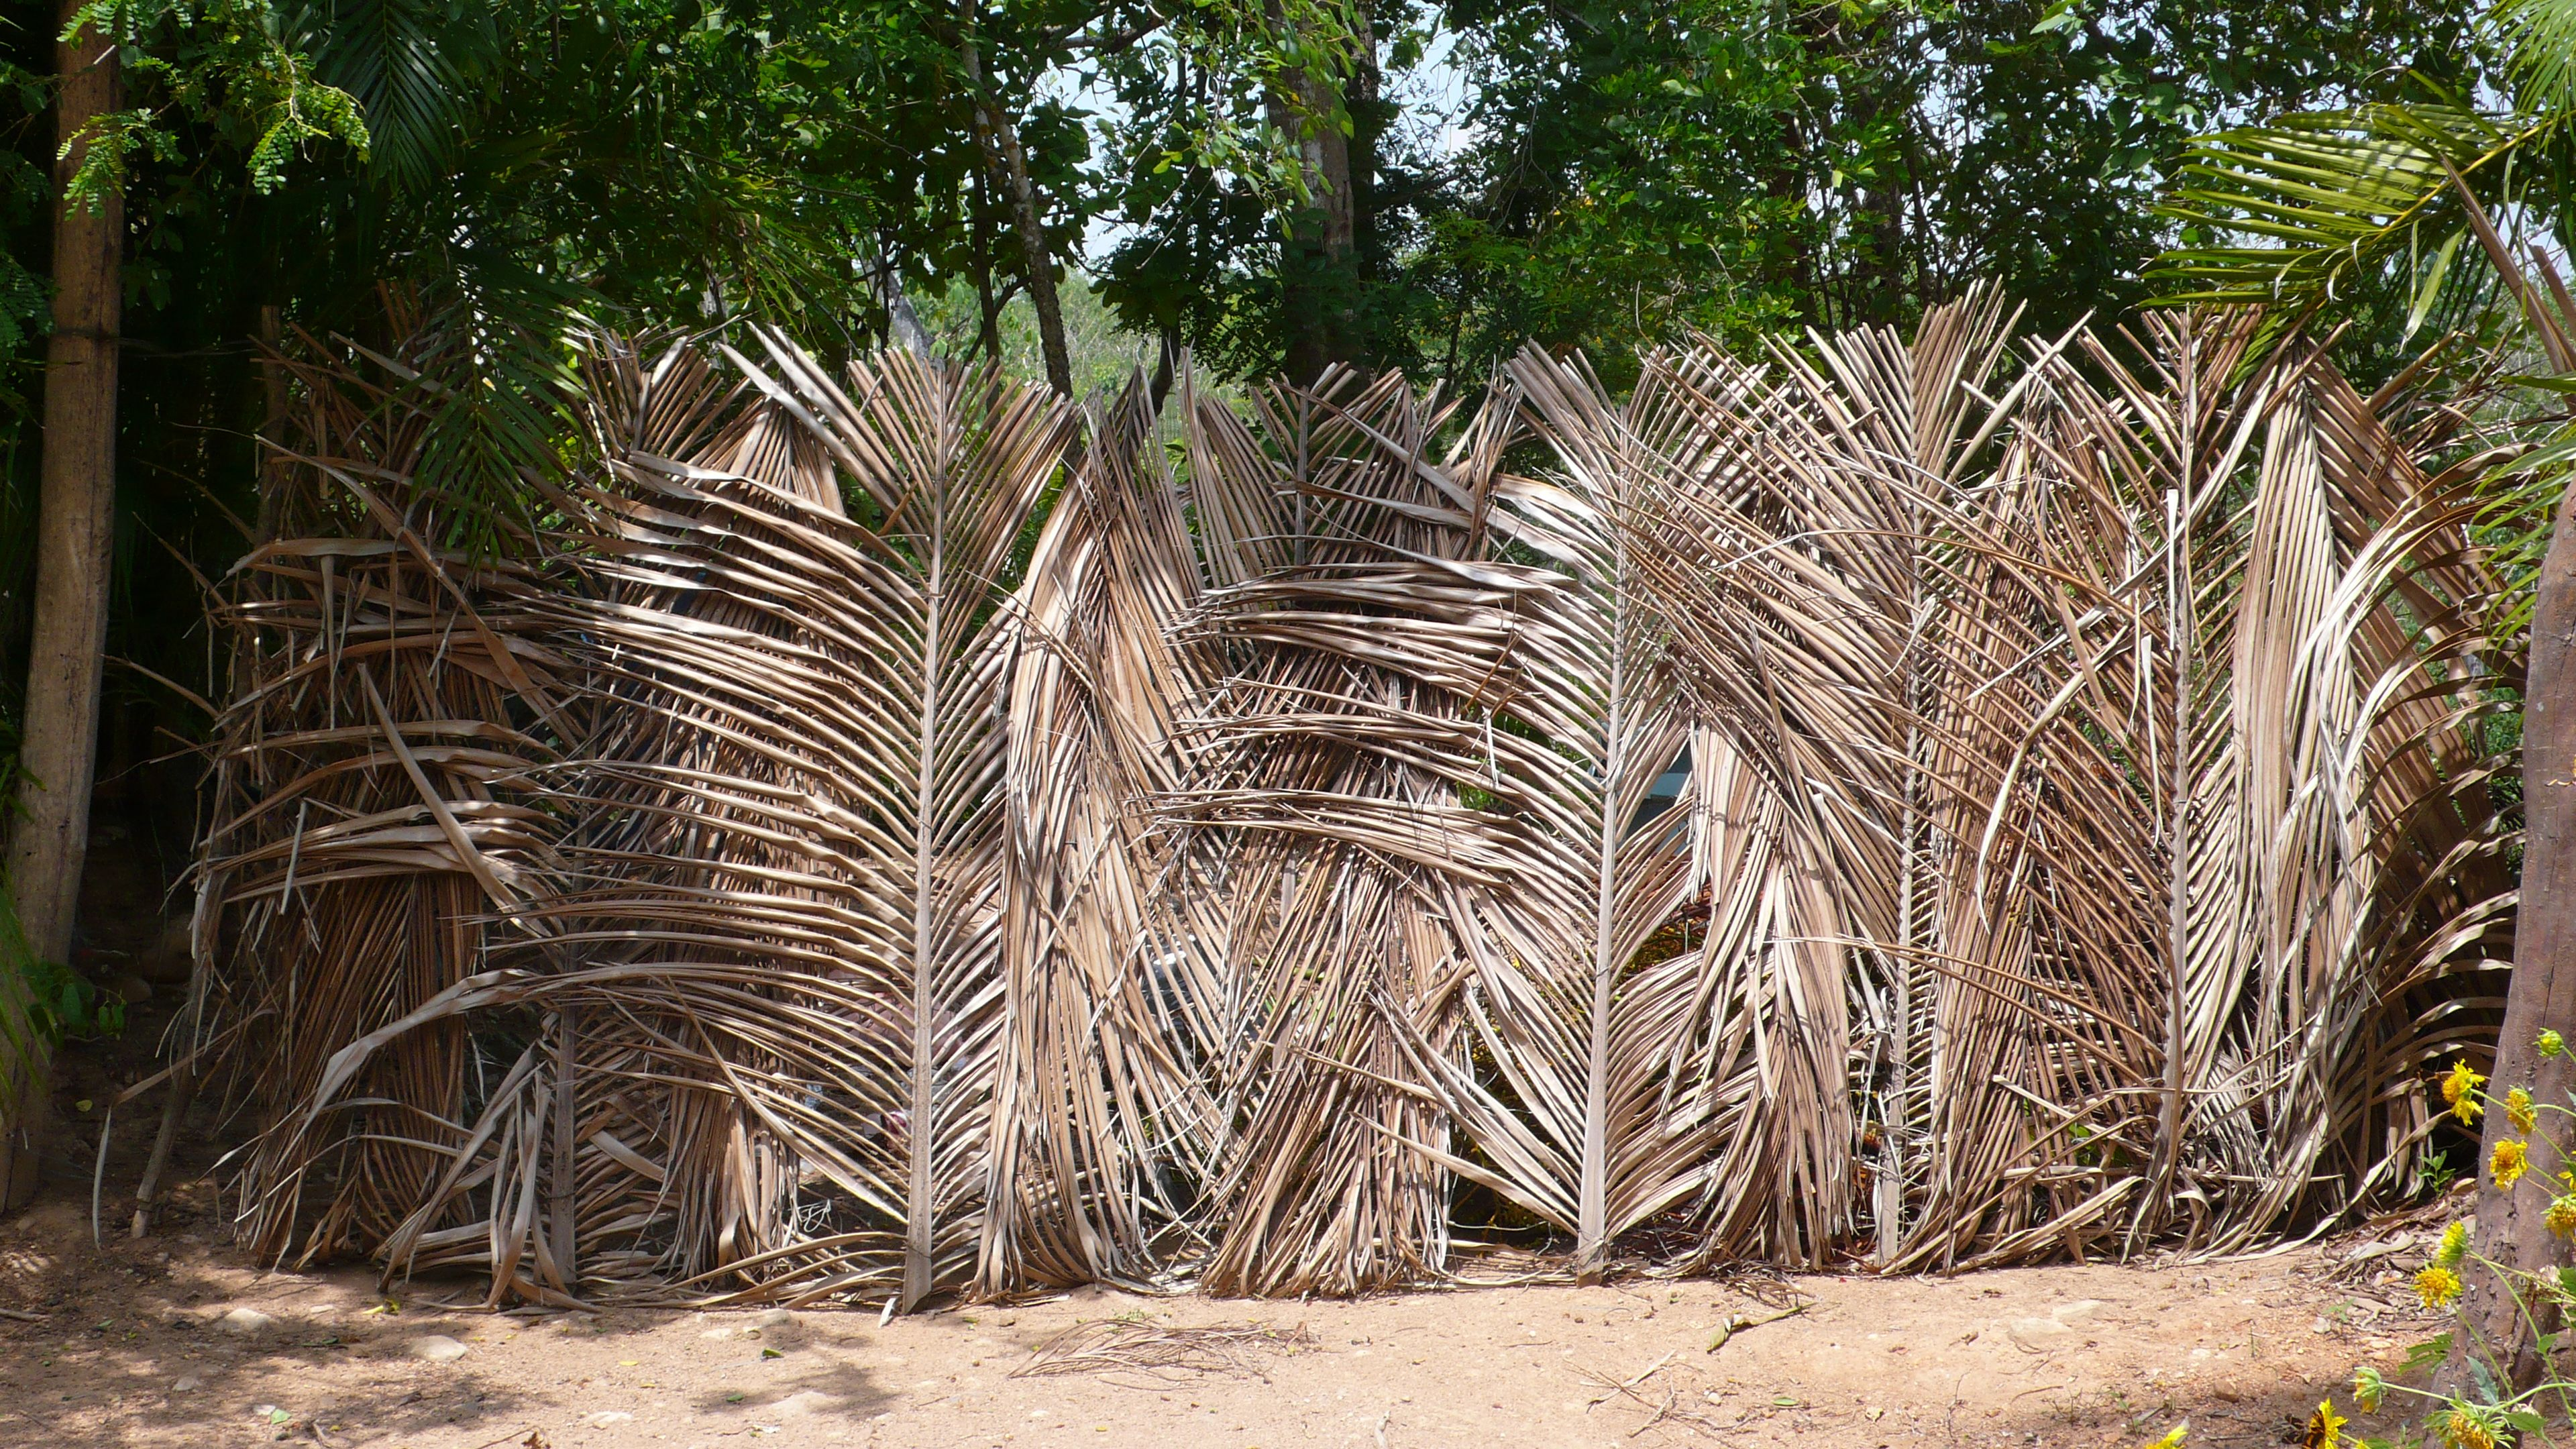 Pin By Priscilla Woolworth On Mexico Front Yard Fence Fence Gate Fence Landscaping